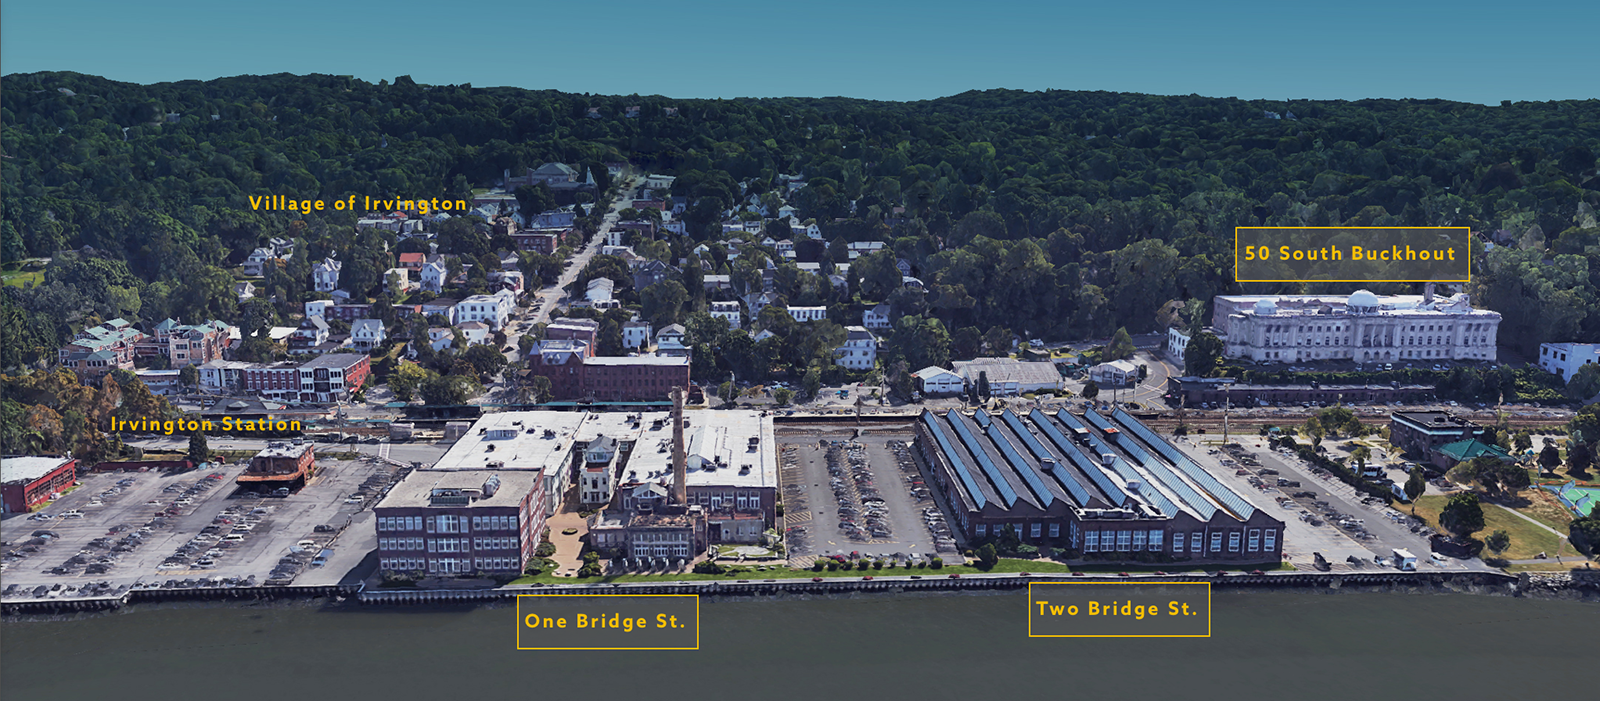 bridge street on hudson site plan